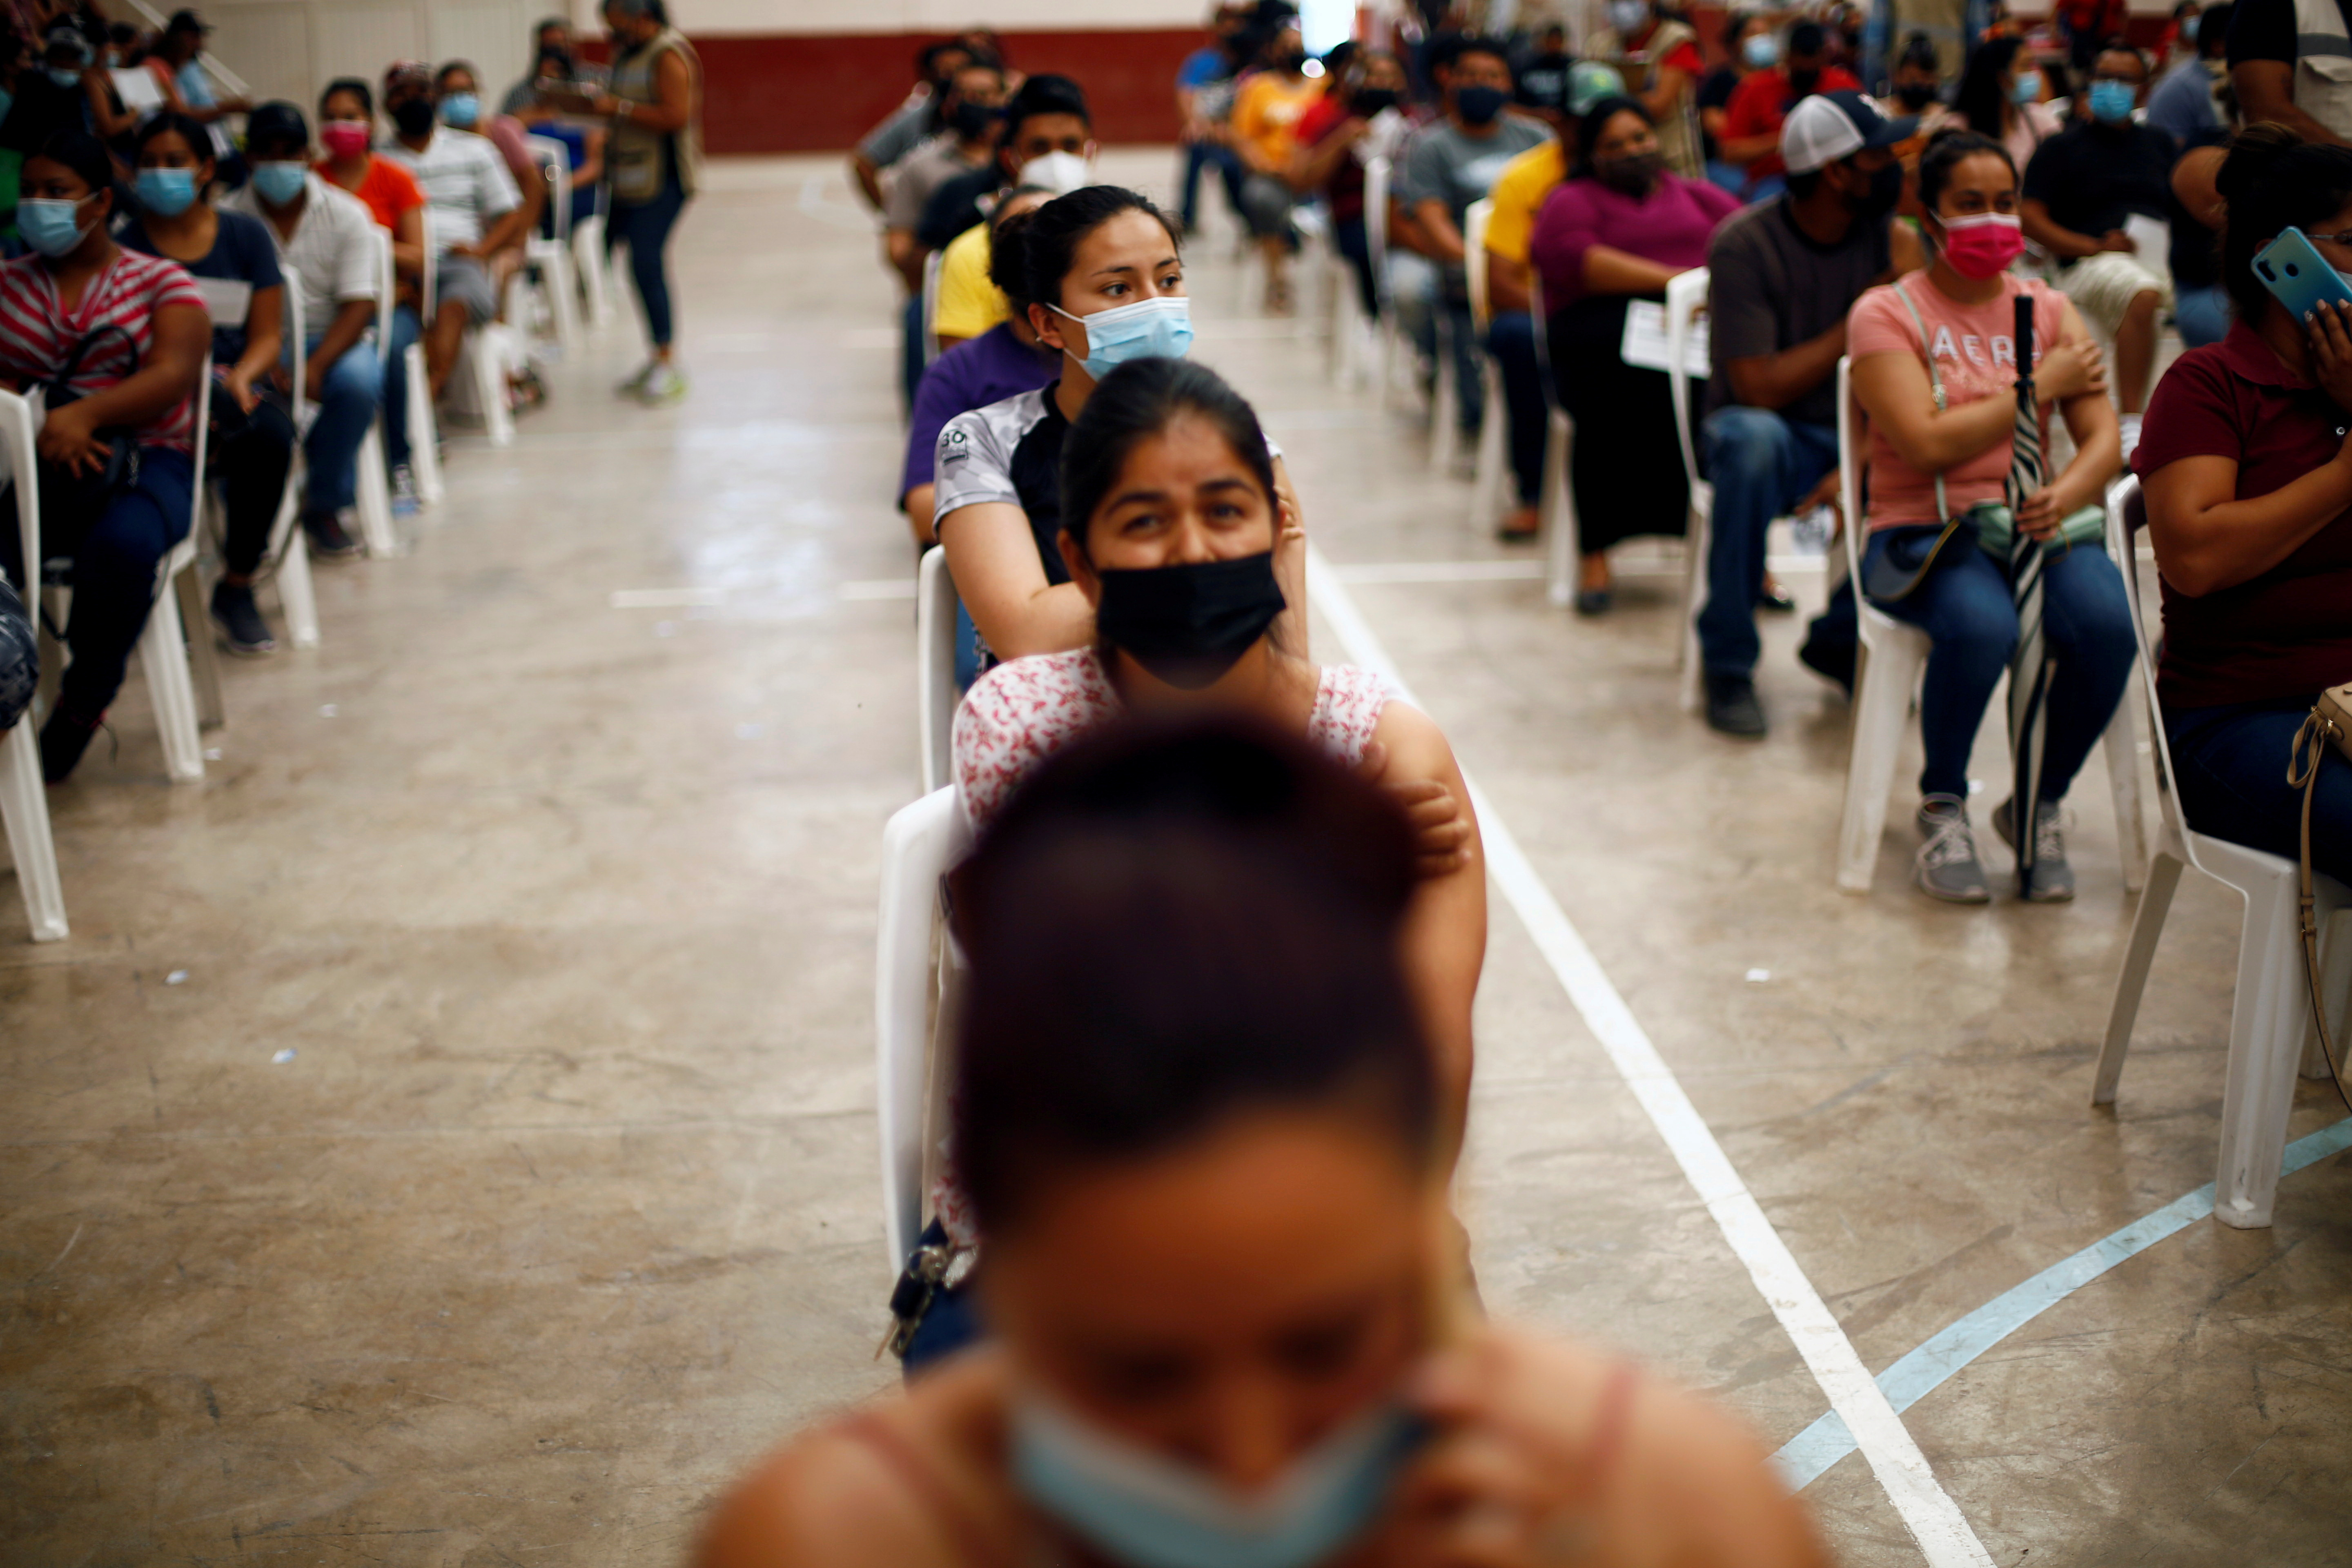 People wait after receiving a dose of the Pfizer-BioNTech coronavirus disease (COVID-19) vaccine during a mass vaccination program for people over 18 years of age at a gym in Praxedis G. Guerrero, Mexico July 10, 2021. REUTERS/Jose Luis Gonzalez/File Photo